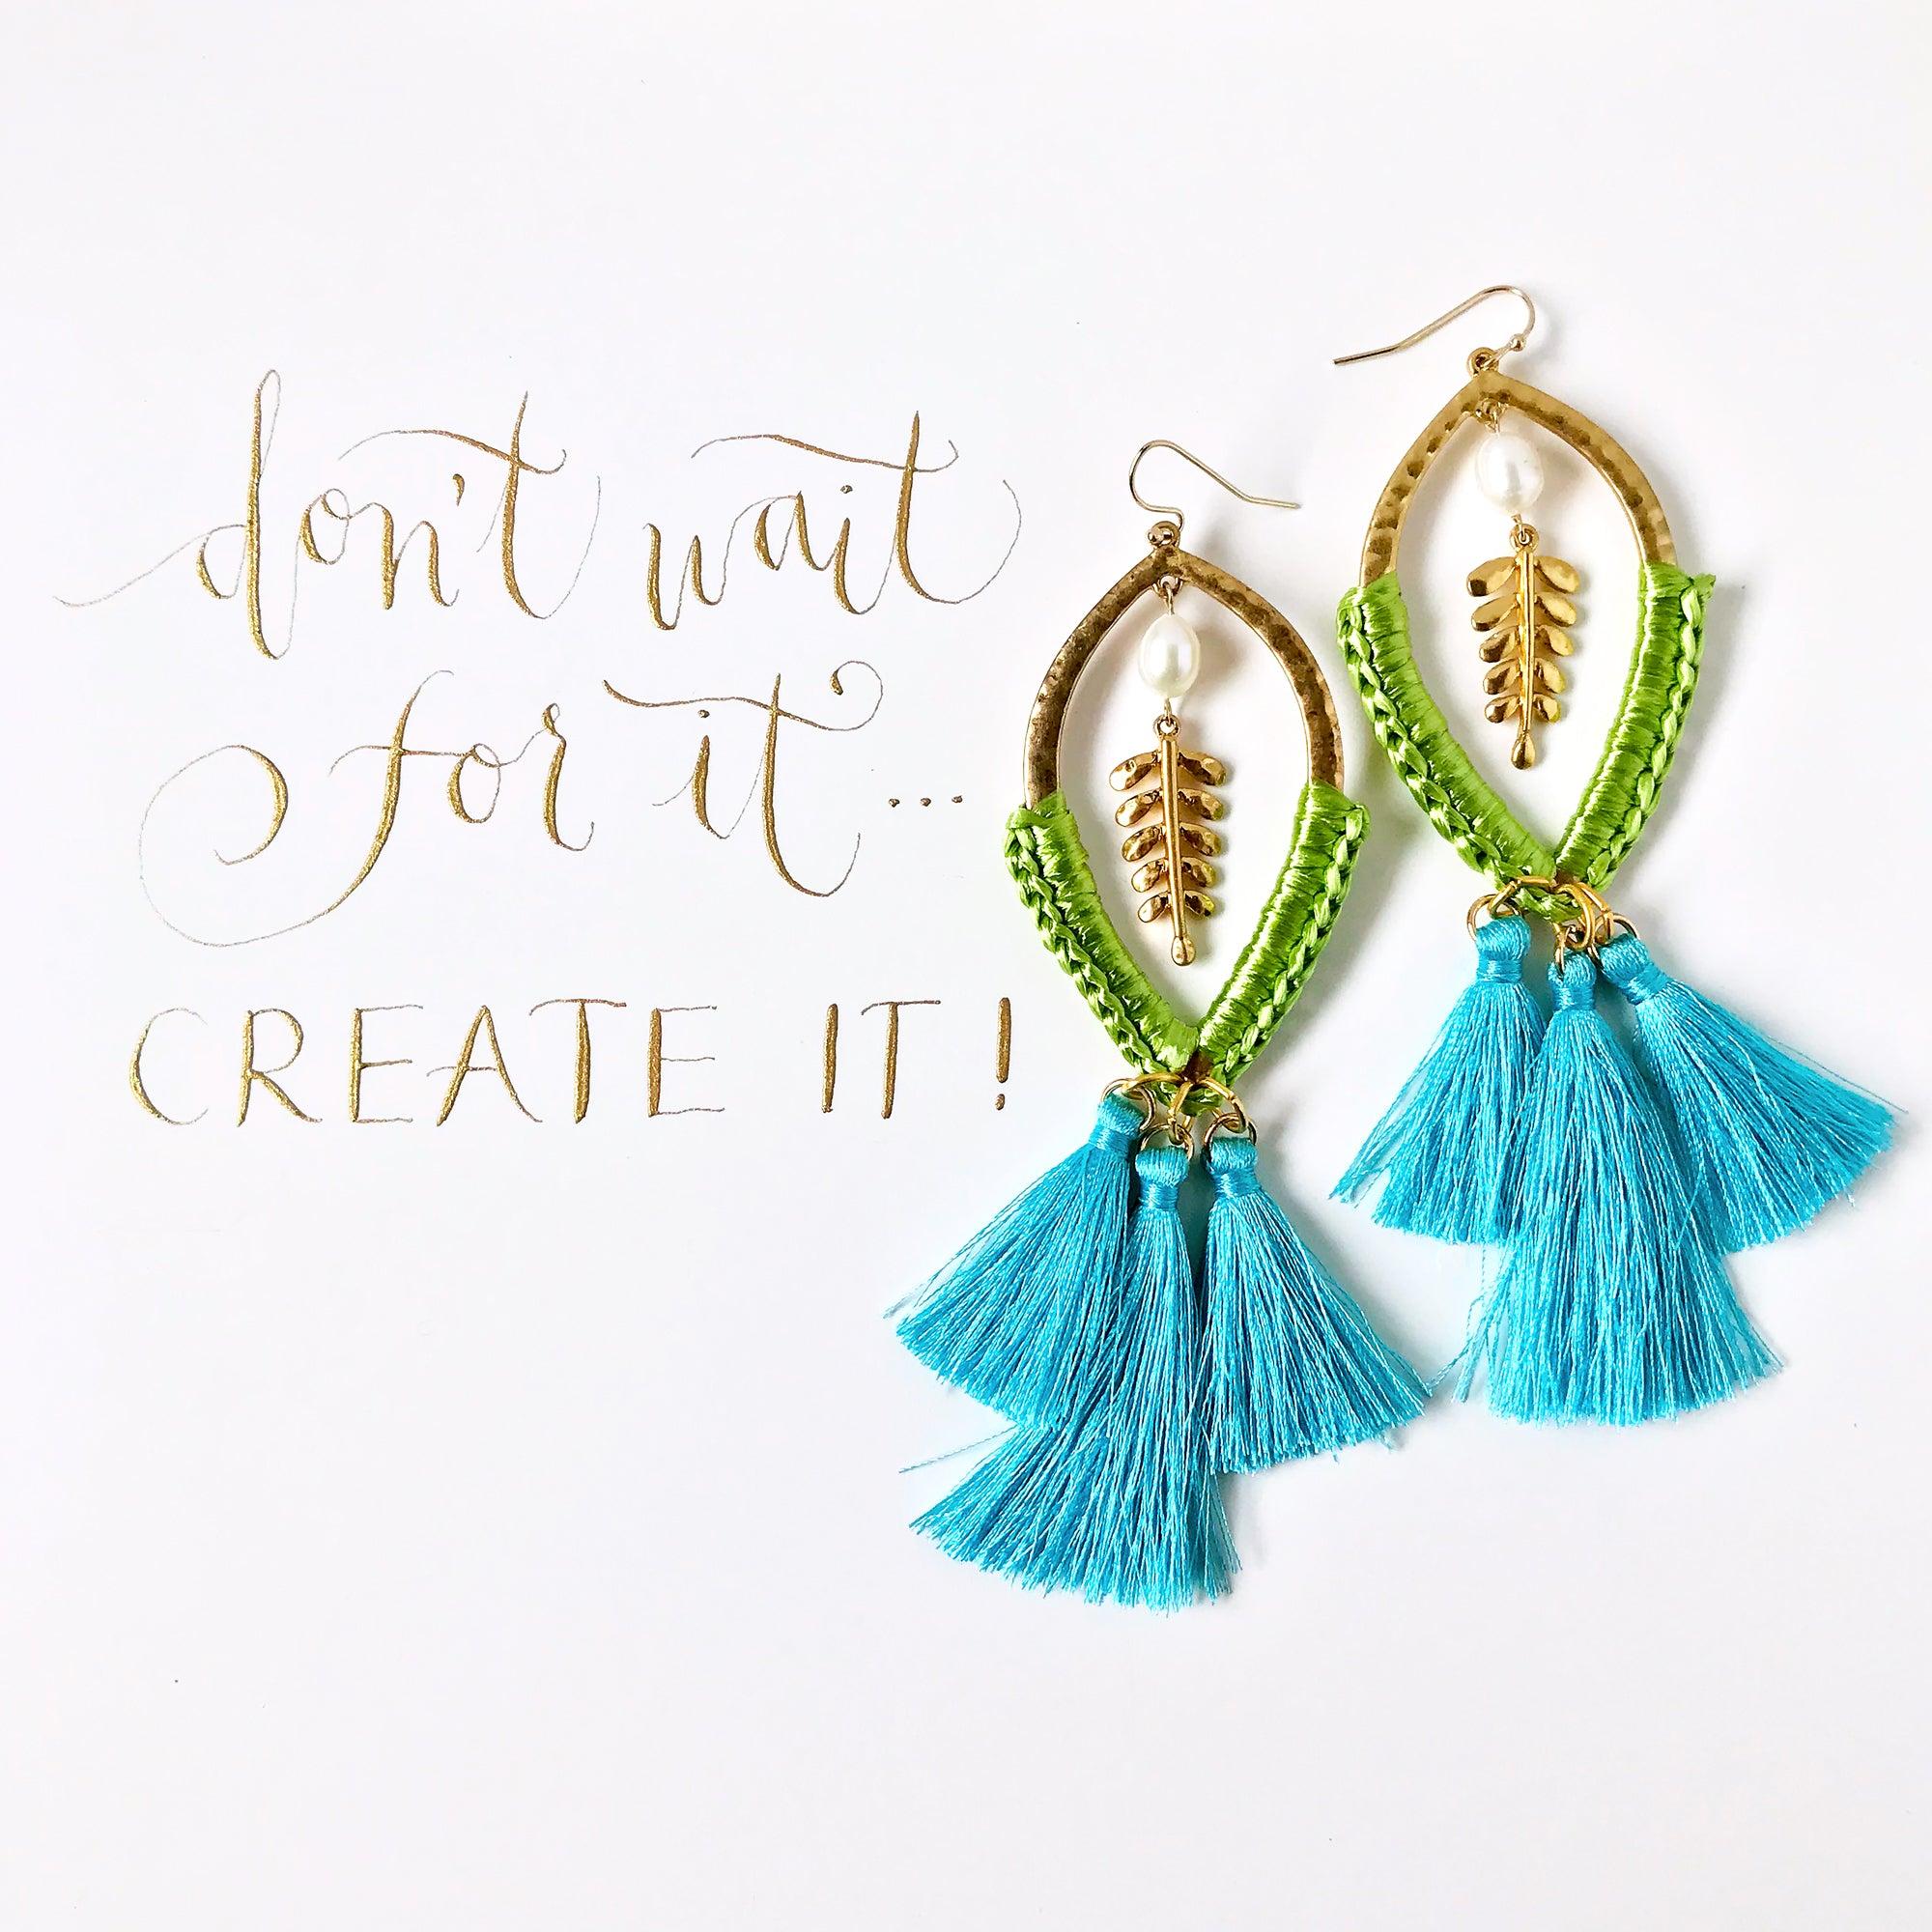 #SequinSayings - Don't Wait for It, Create It!